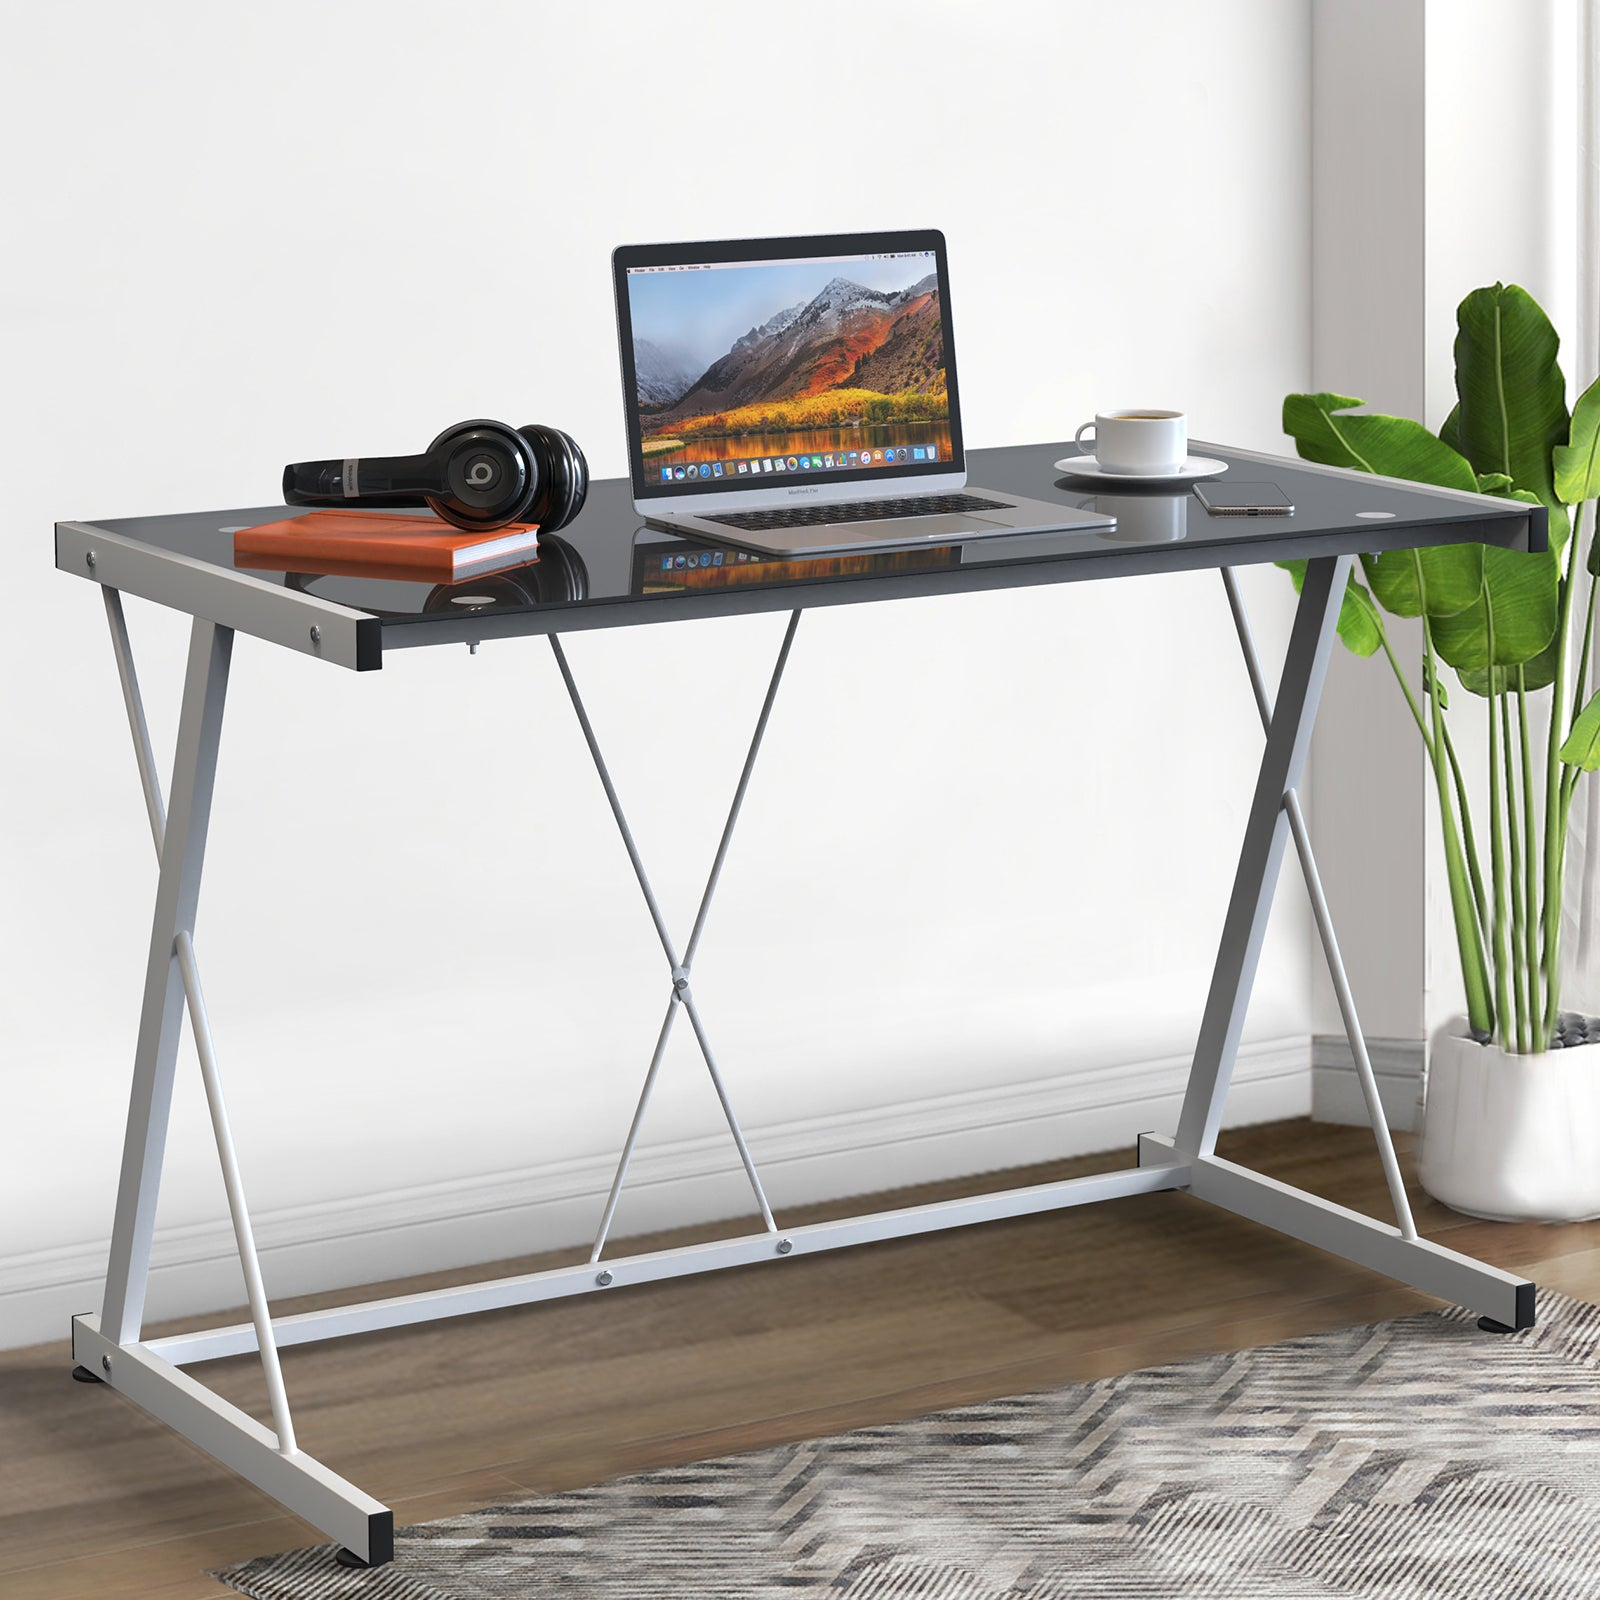 Advwin Z Shaped Tempered Glass Computer Desk Laptop Table for Gaming Study Black